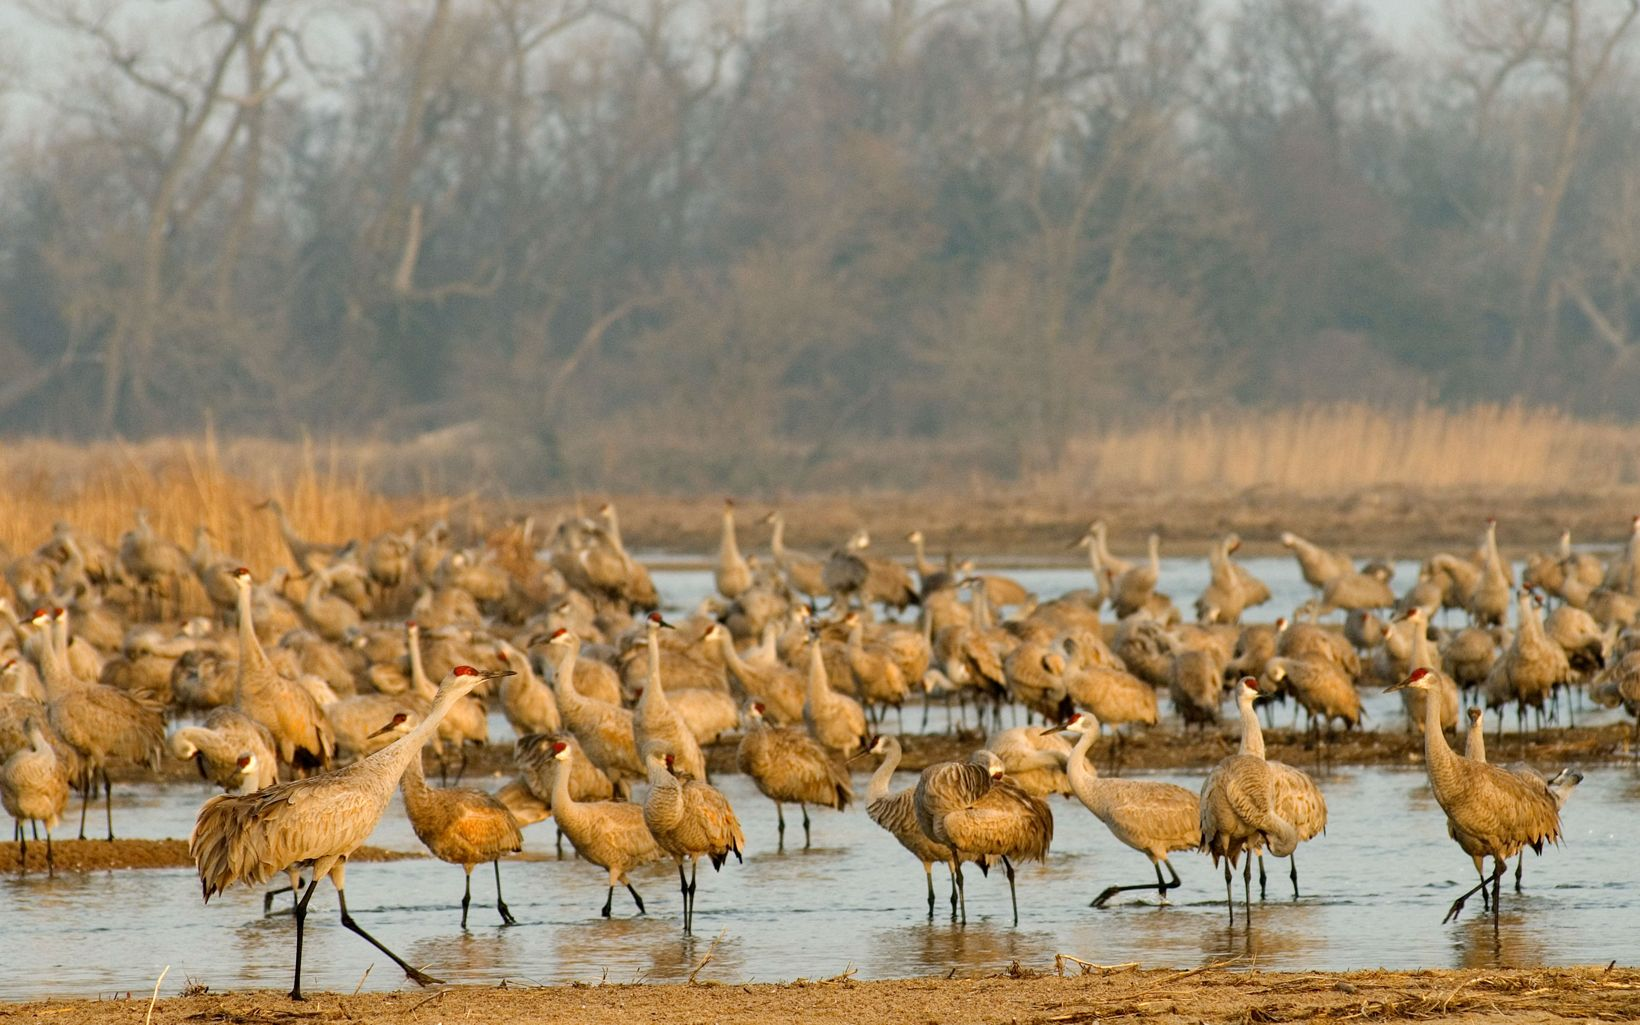 on their overnight roost along the Platte River in Nebraska.